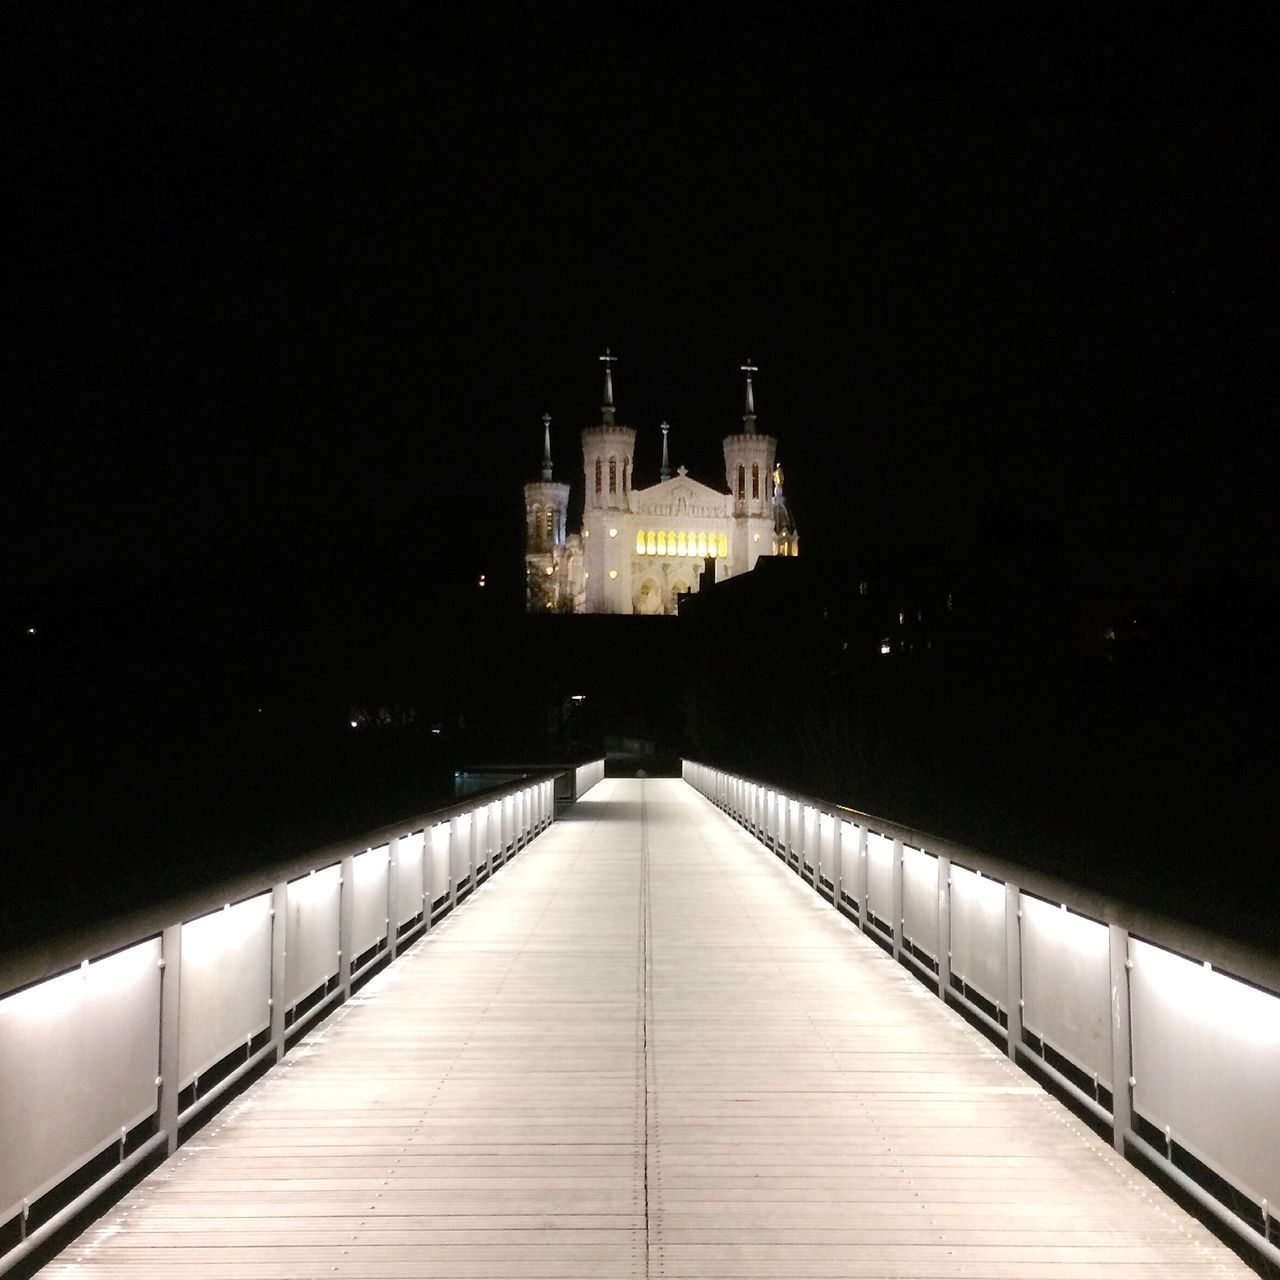 Light Architecture Built Structure The Way Forward Leading No People Night Travel Destinations Building Exterior Outdoors